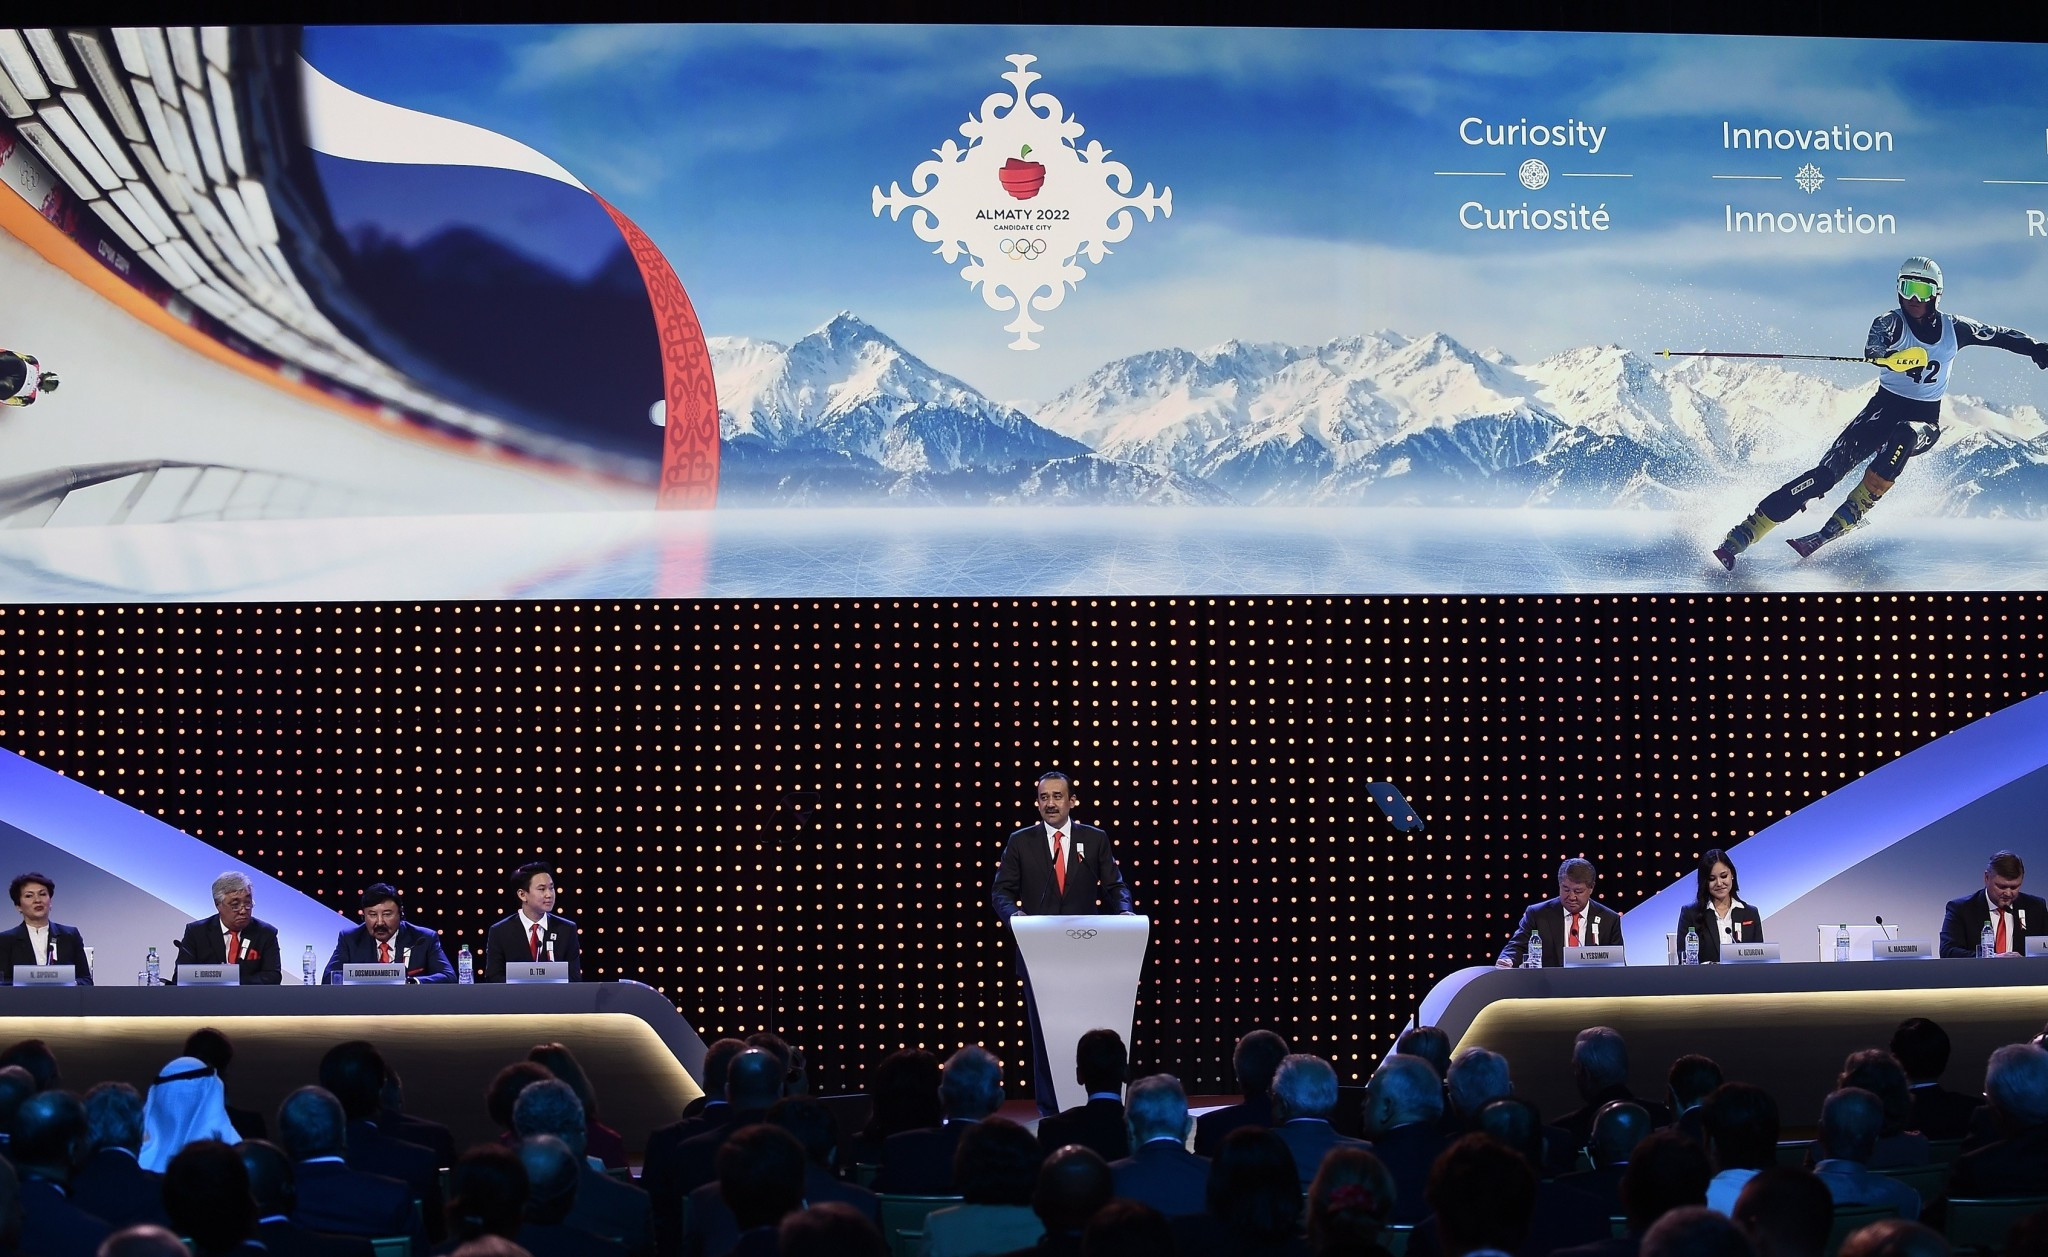 Almaty just missed out in the 2022 Winter Olympics and Paralympics bid race ©Getty Images